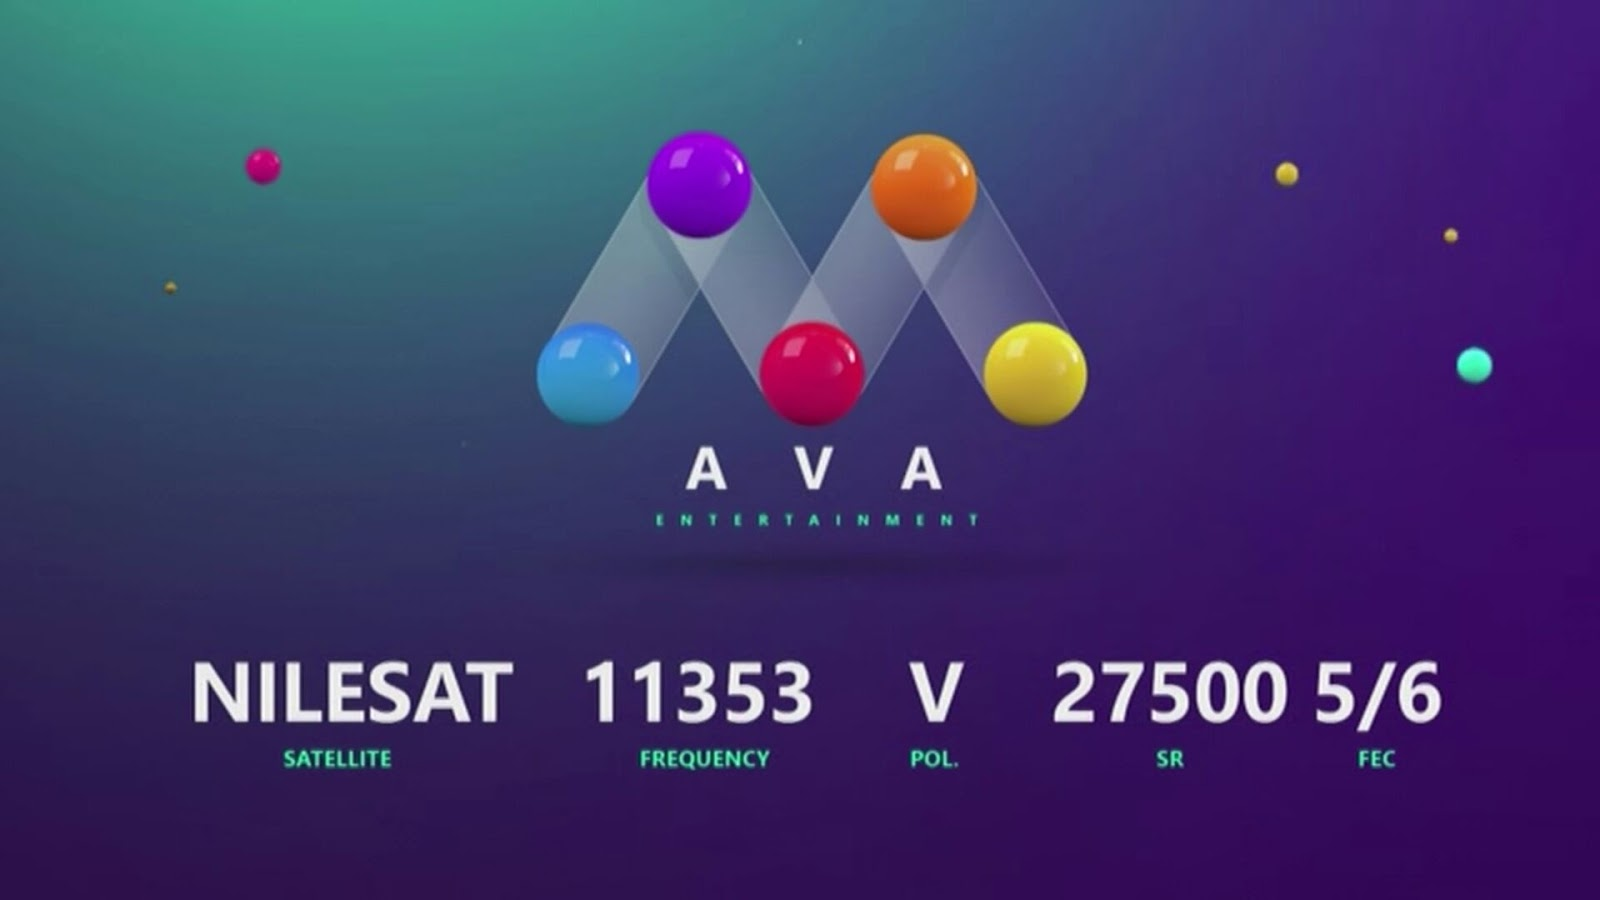 AVA TV - Nilesat Frequency - Freqode com